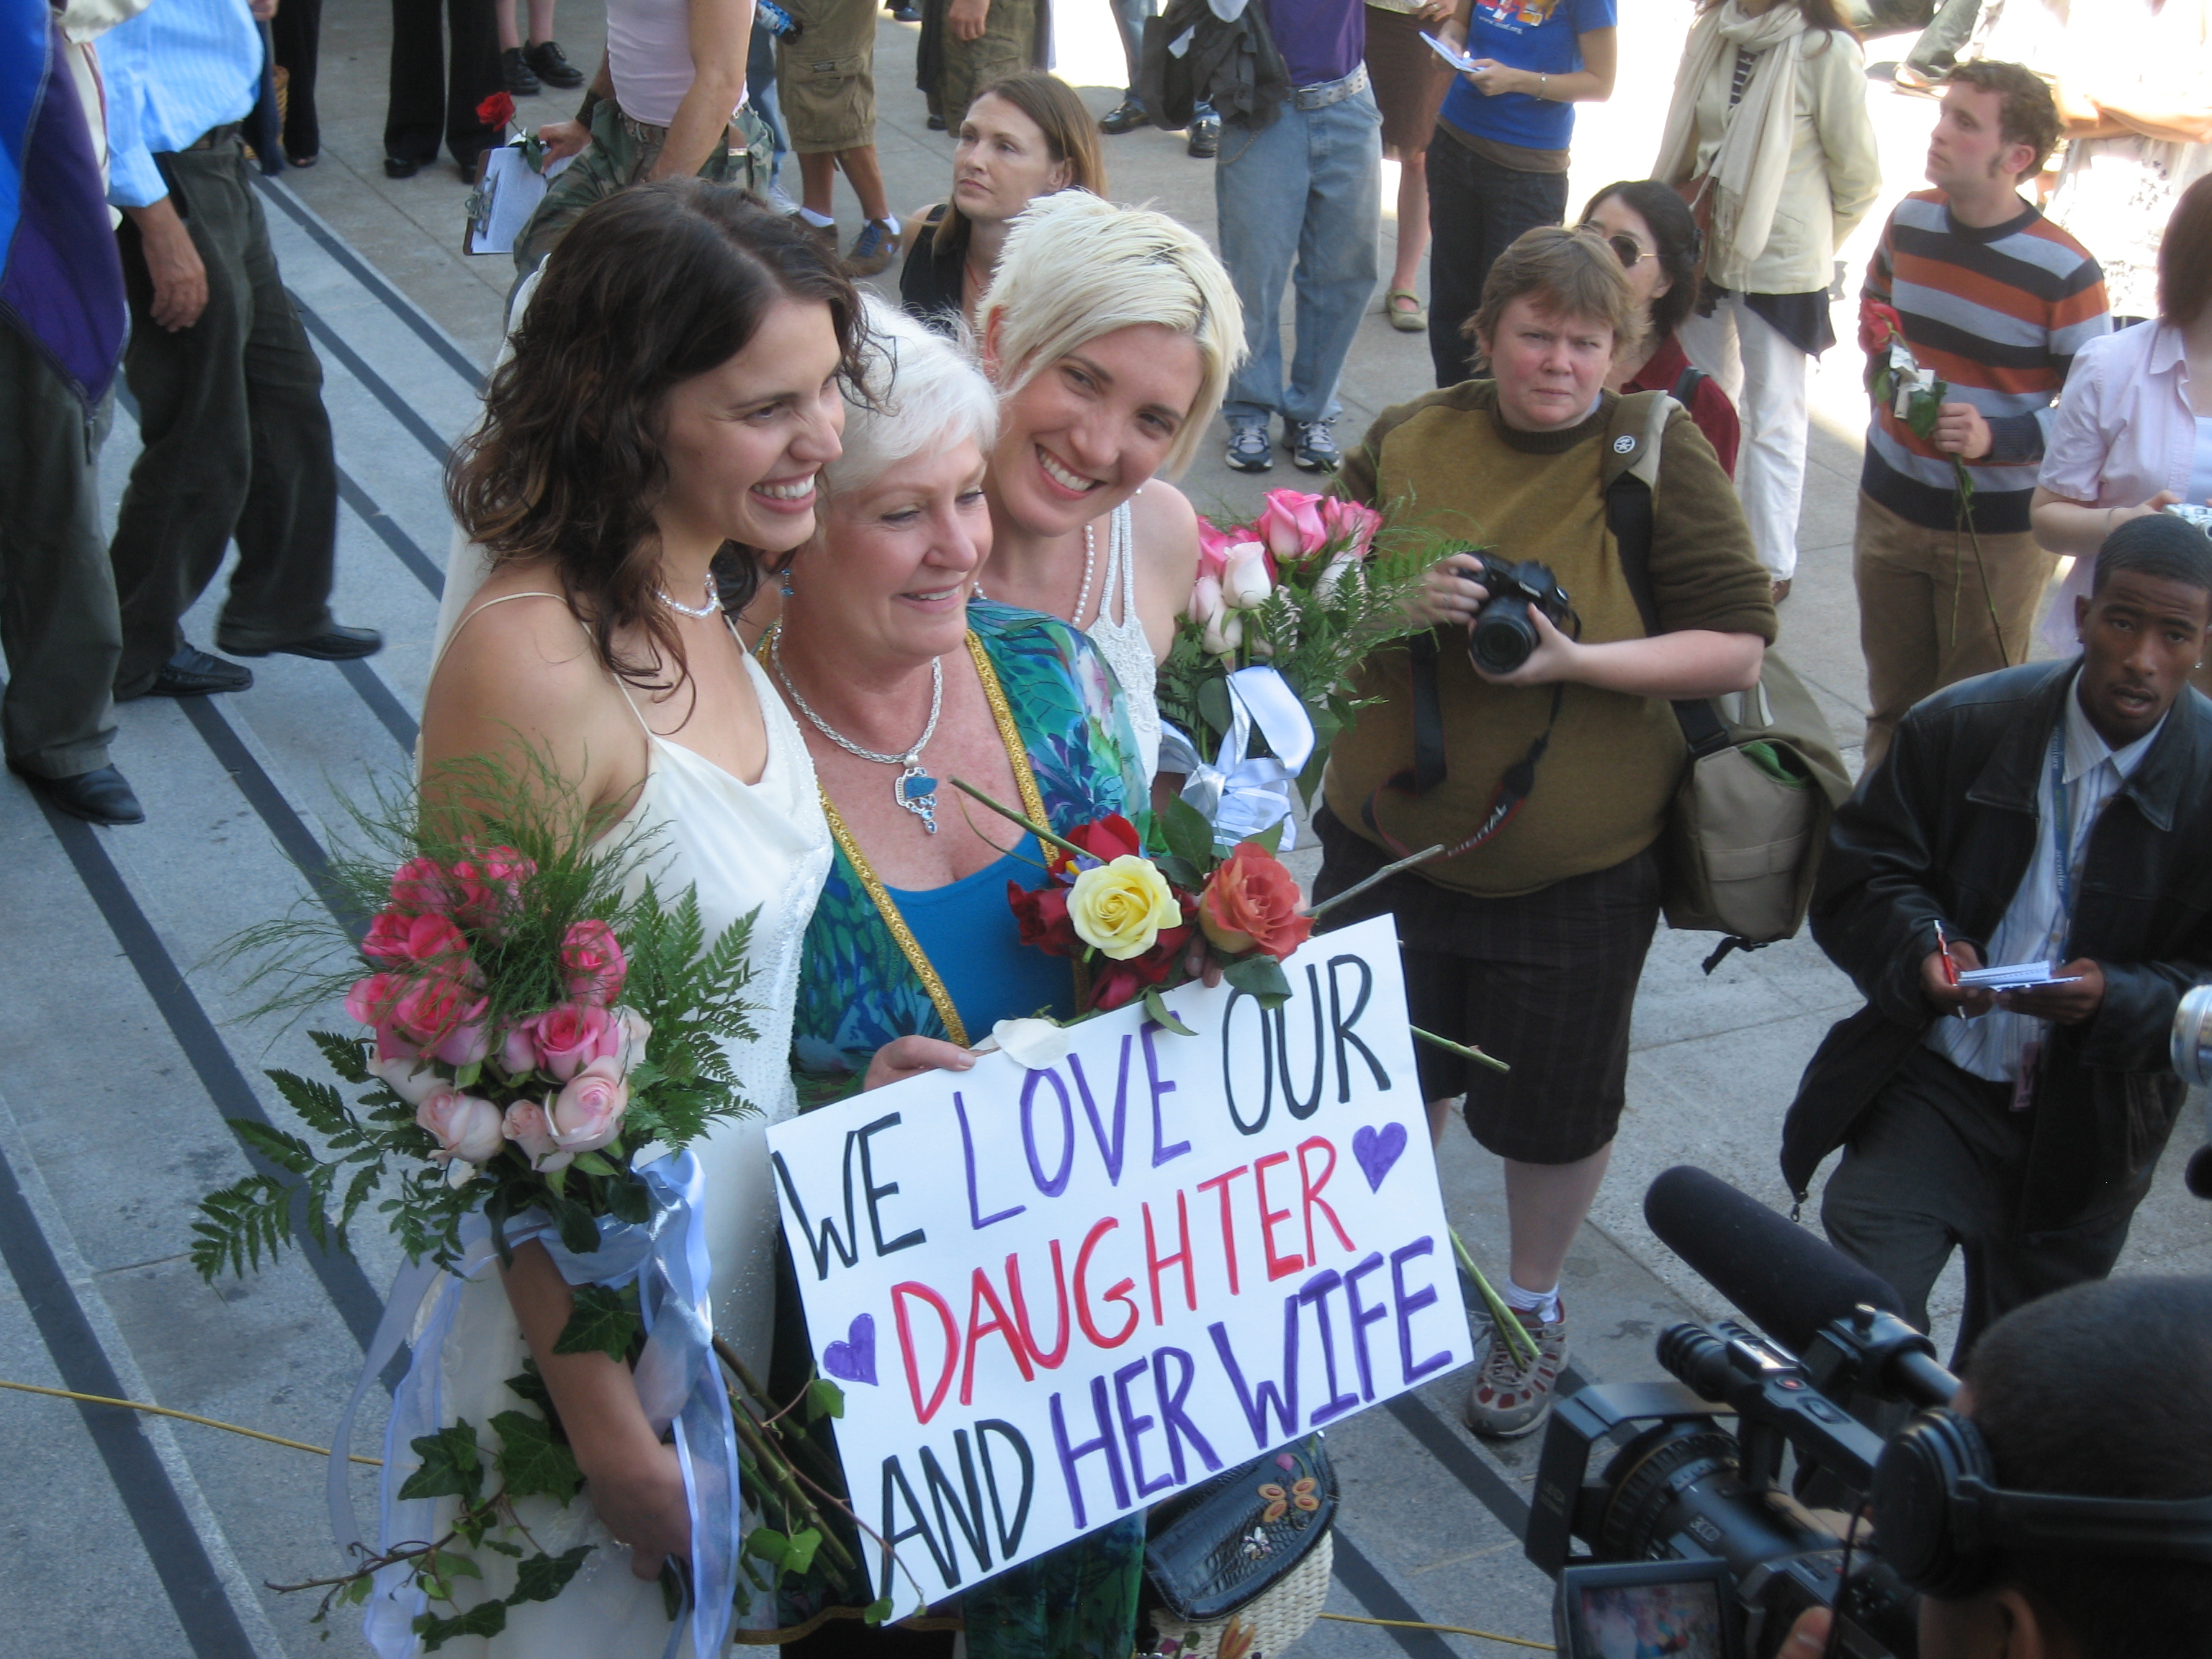 gay marriage position paper Those policies include support for civil marriage rights for same-sex couples, opposition to so-called conversion or reparative therapy and support for health insurance plans that include.